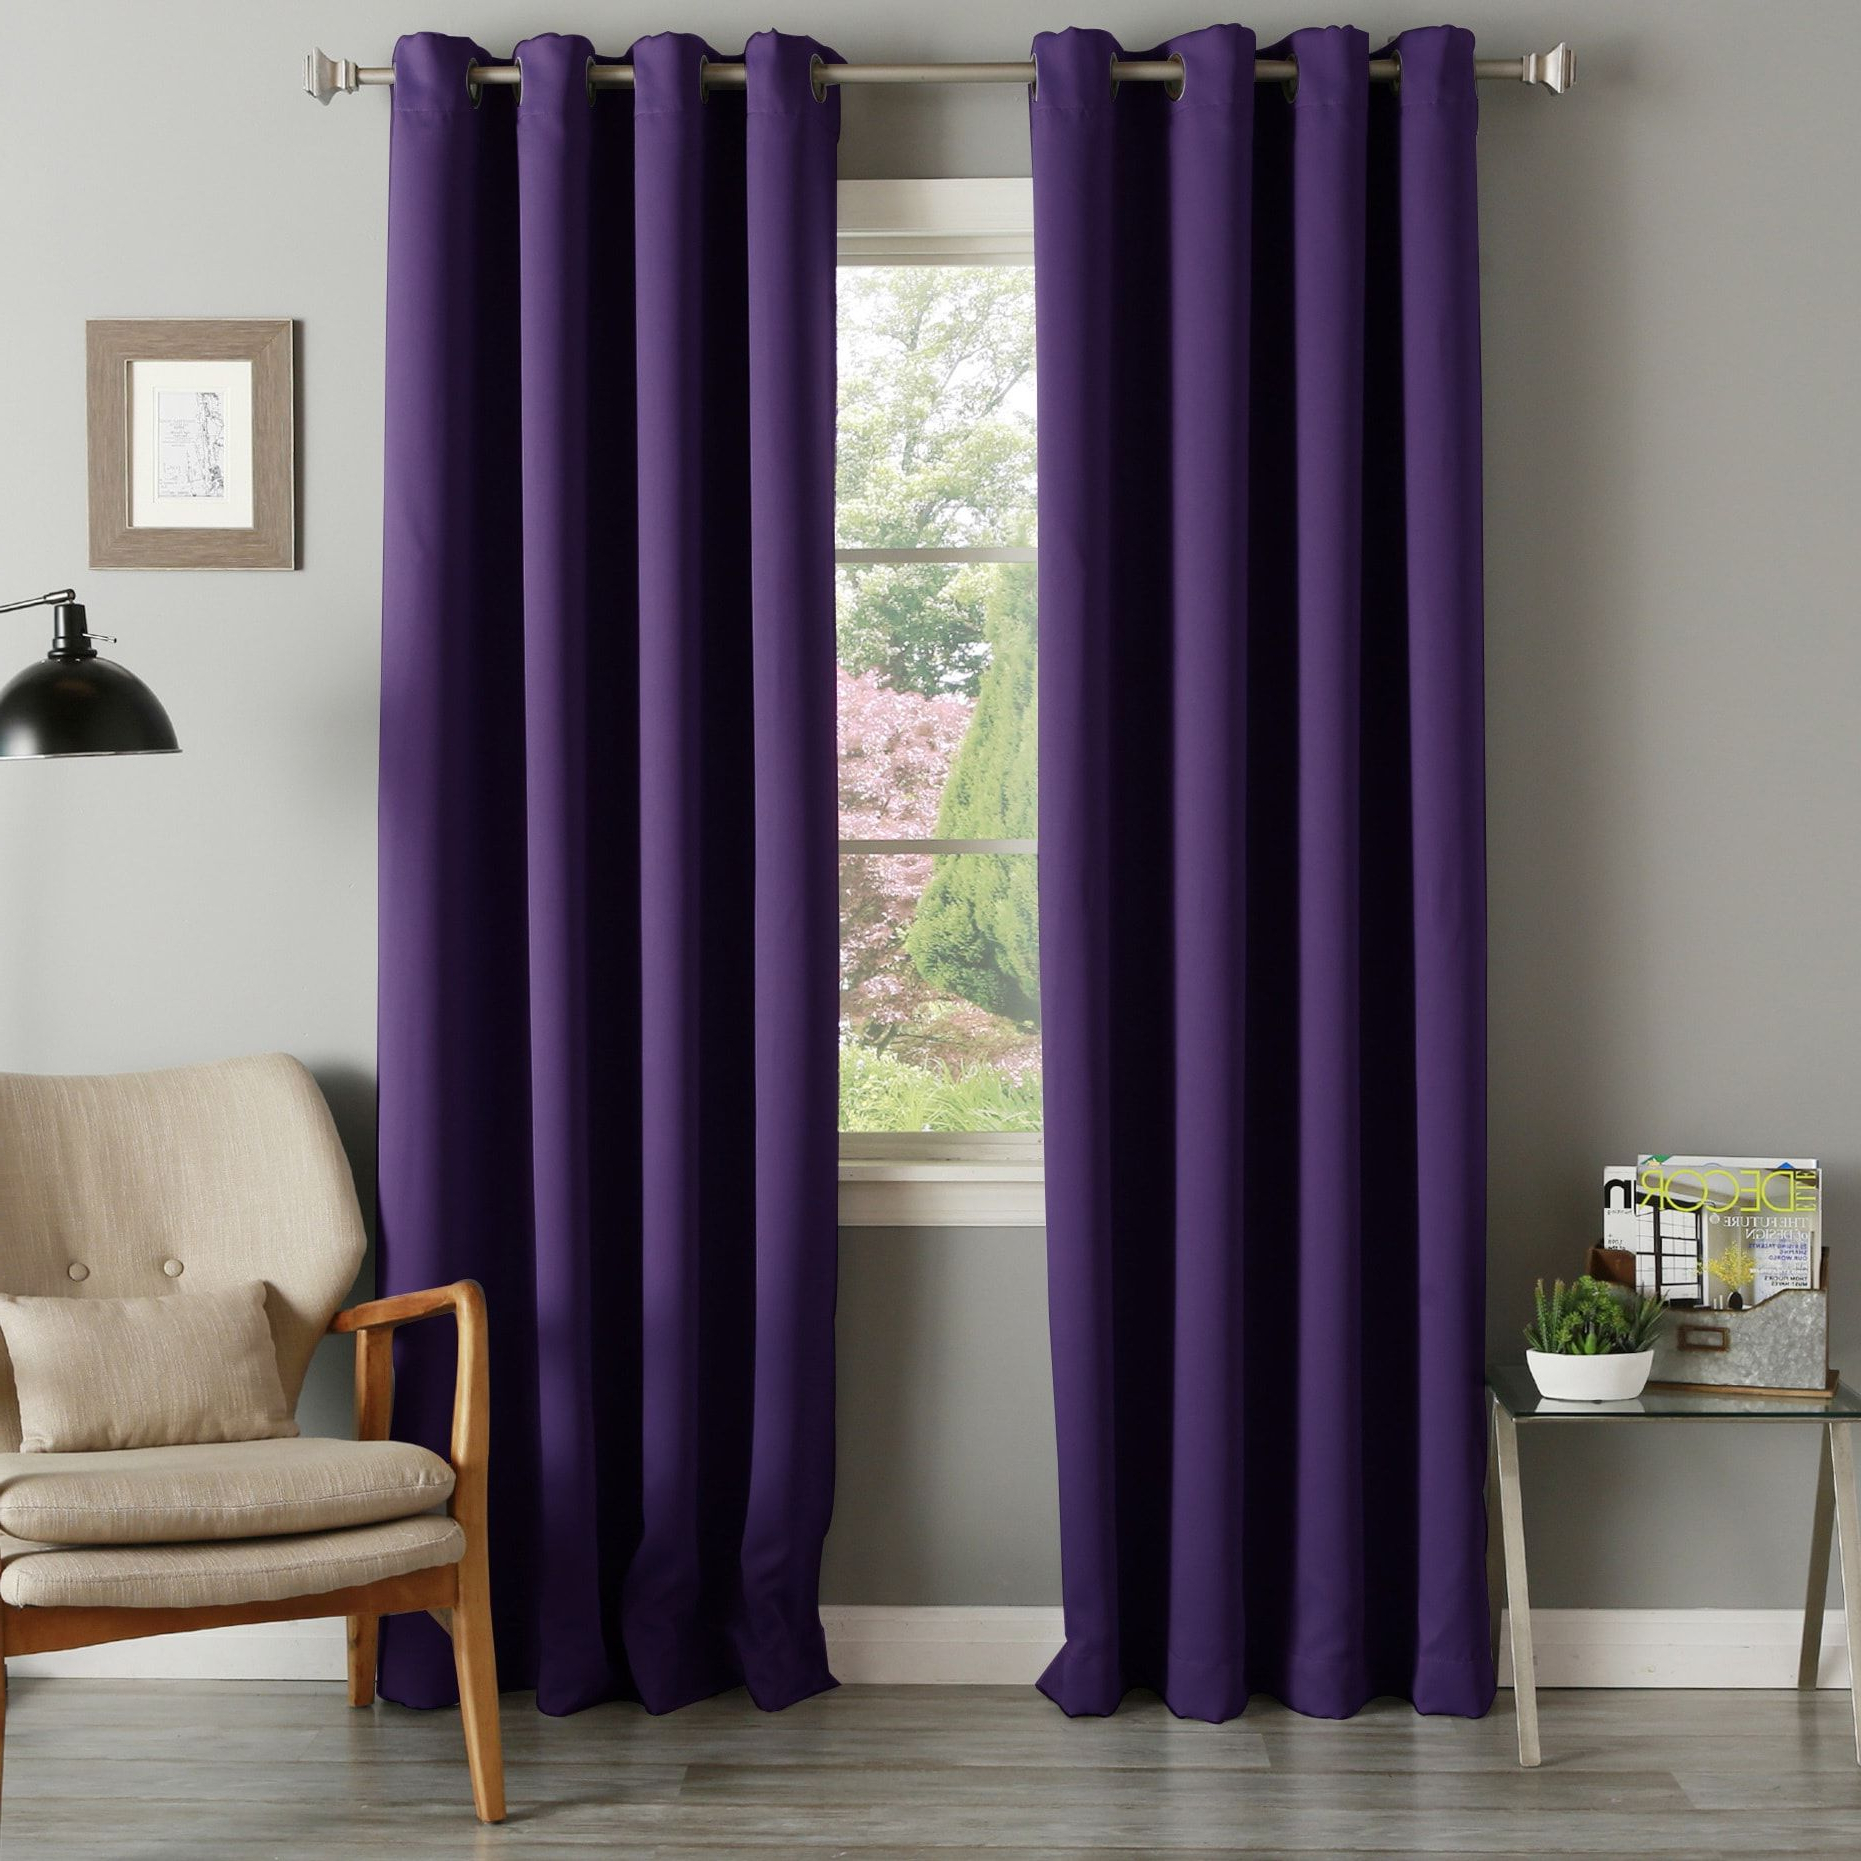 Thermal Insulated Blackout Grommet Top Curtain Panel Pairs In 2021 Aurora Home Grommet Top Thermal Insulated 96 Inch Blackout (View 14 of 20)